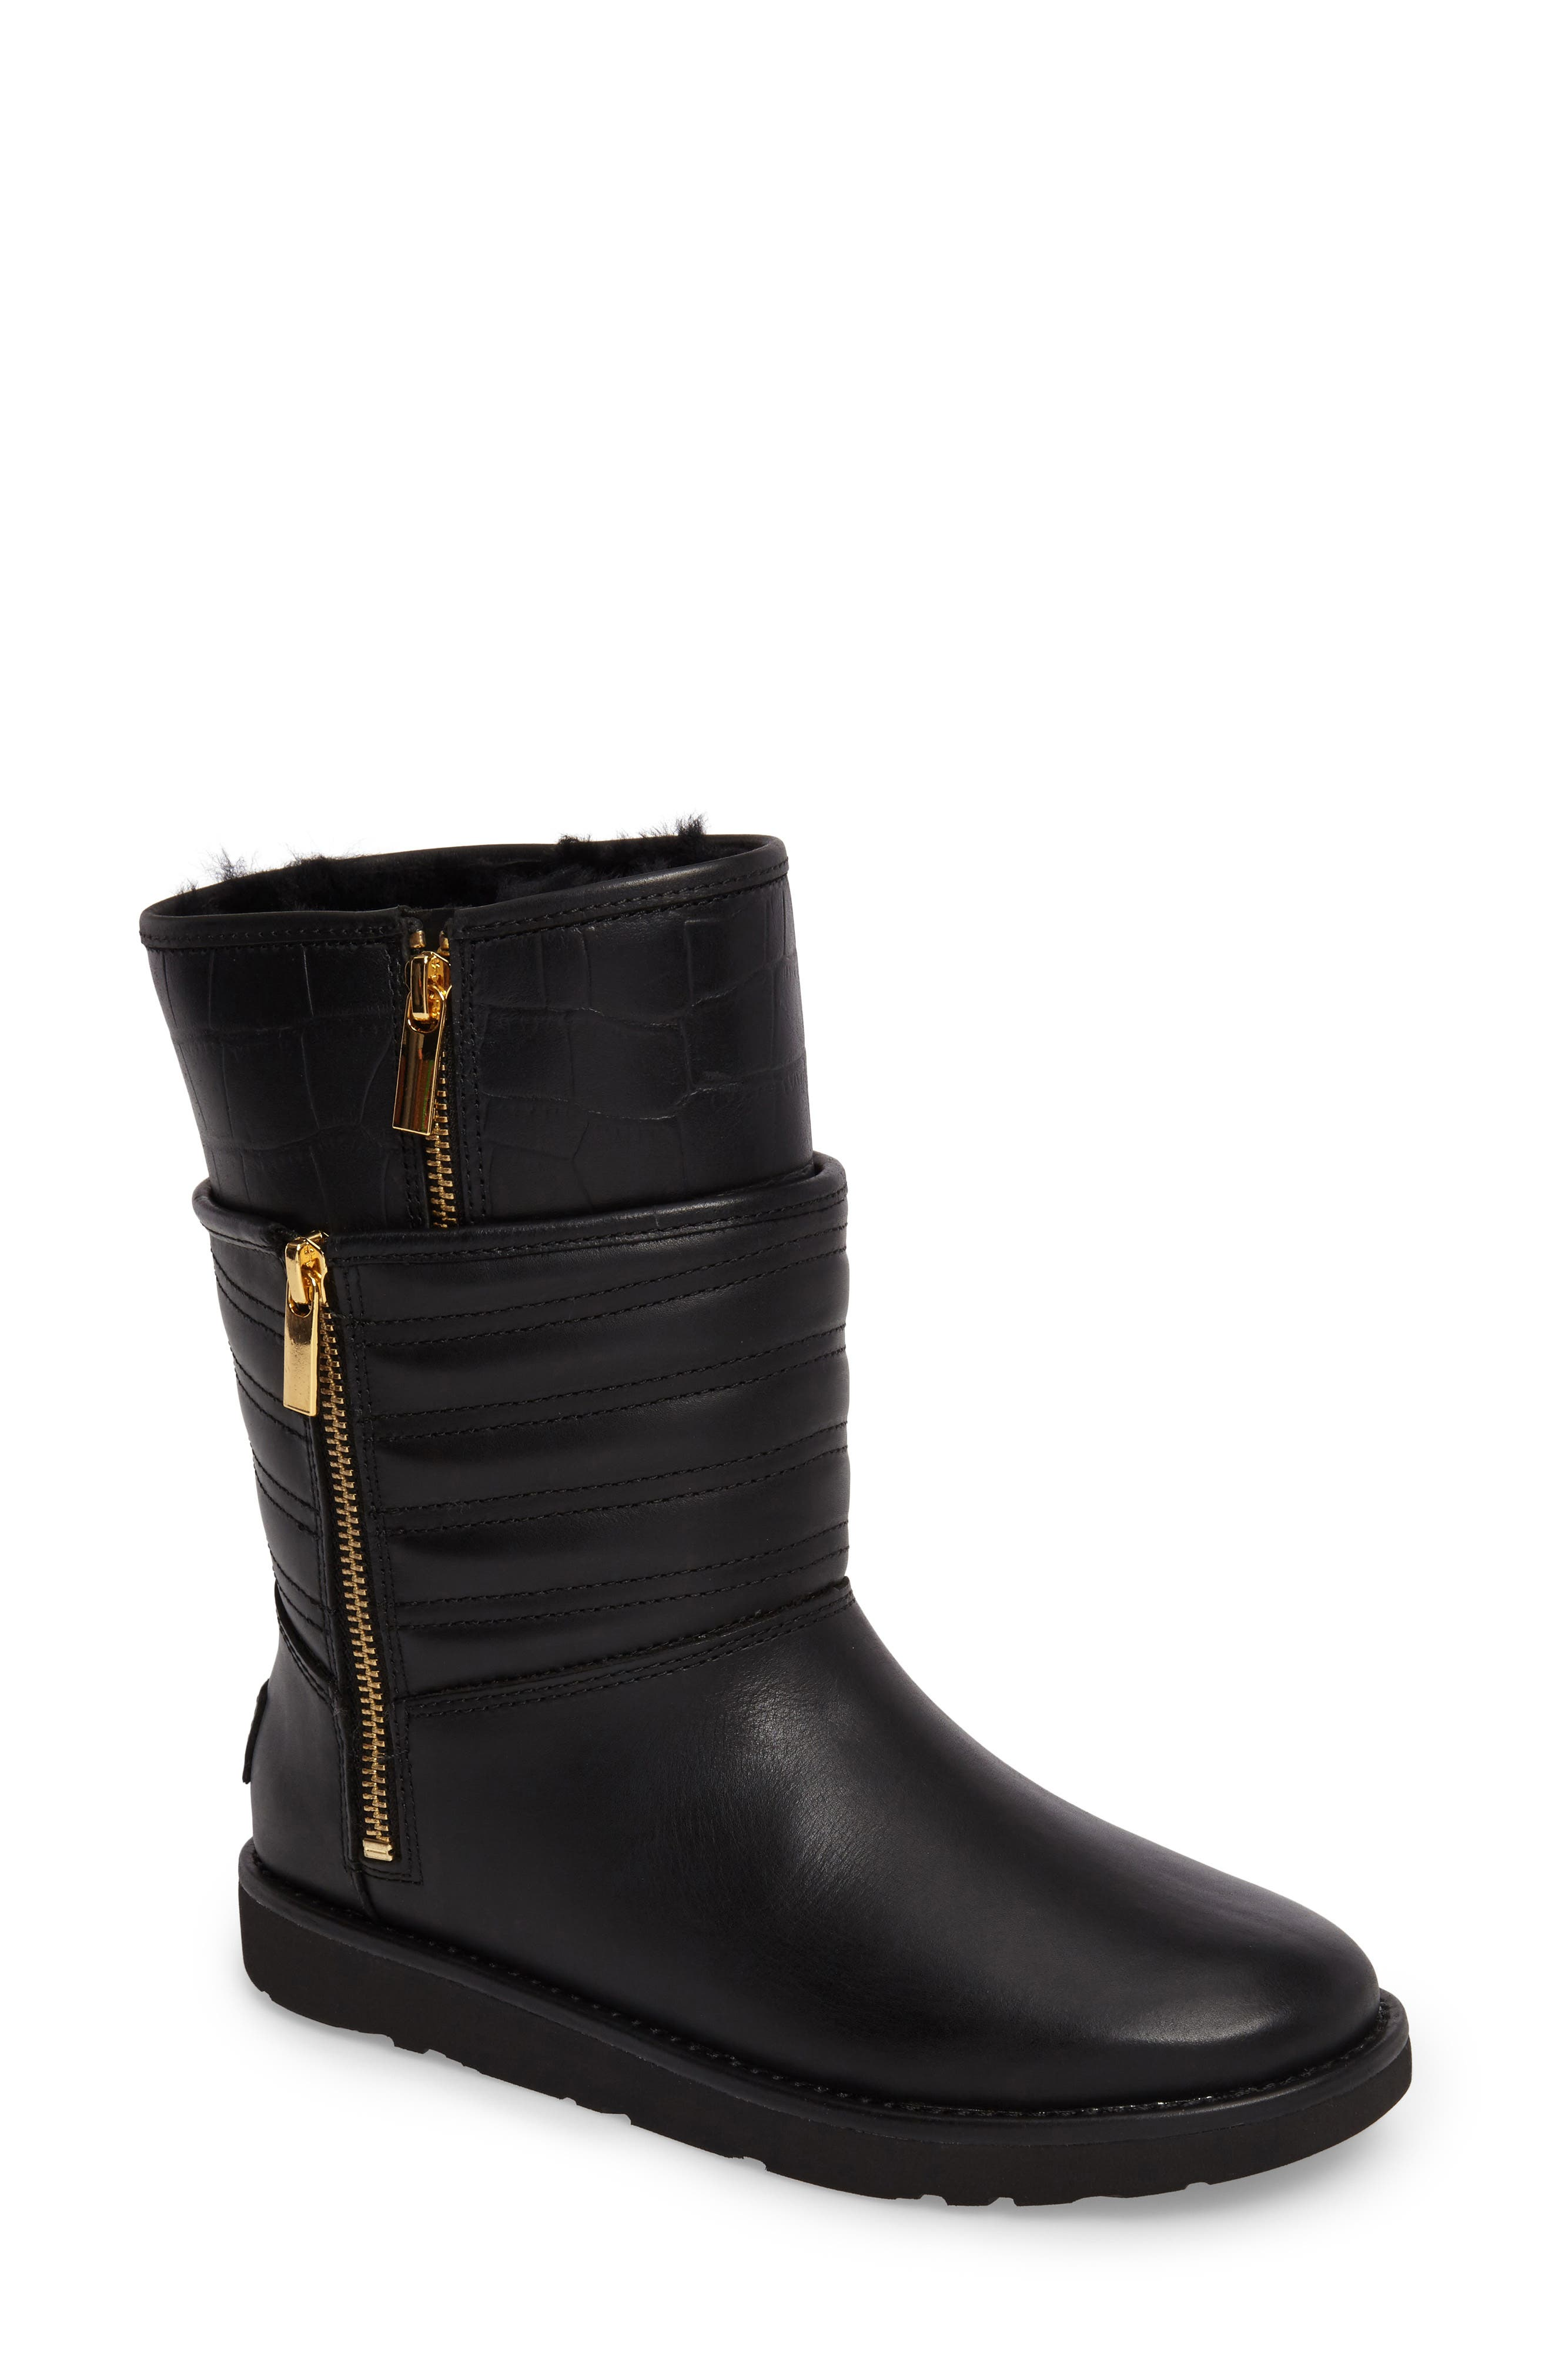 Aviva Genuine Shearling Lined Boot,                             Main thumbnail 1, color,                             Black Leather